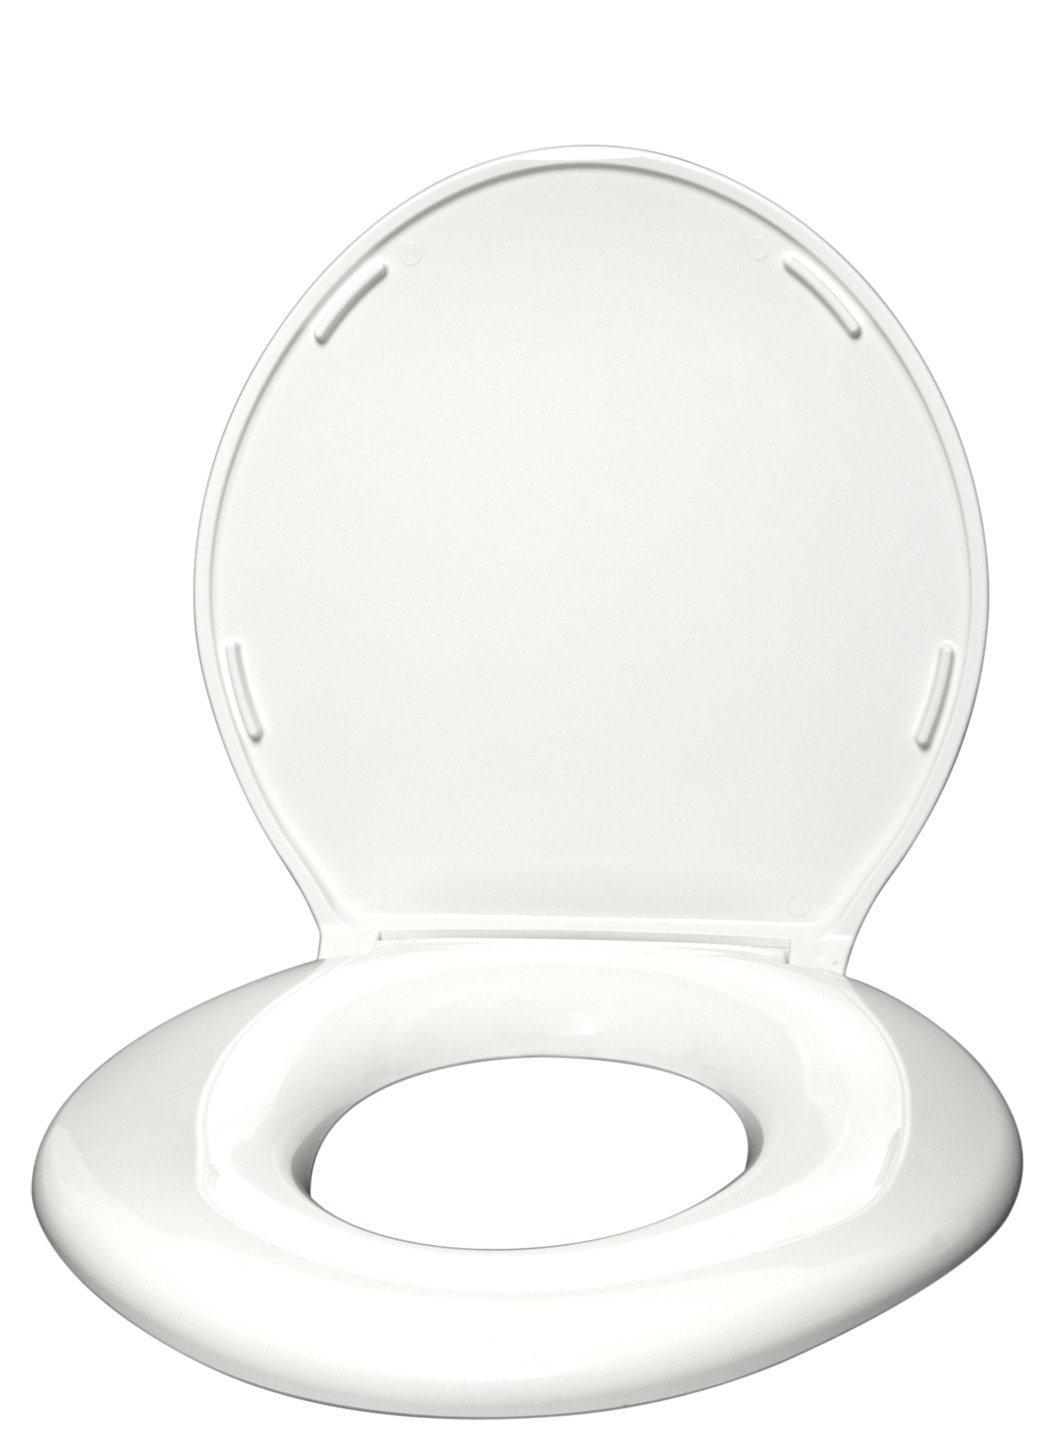 uk toilet seat sizes. The 800 Pound Toilet Seat For Plus Size People Extra Large Seats Heavy  Big And